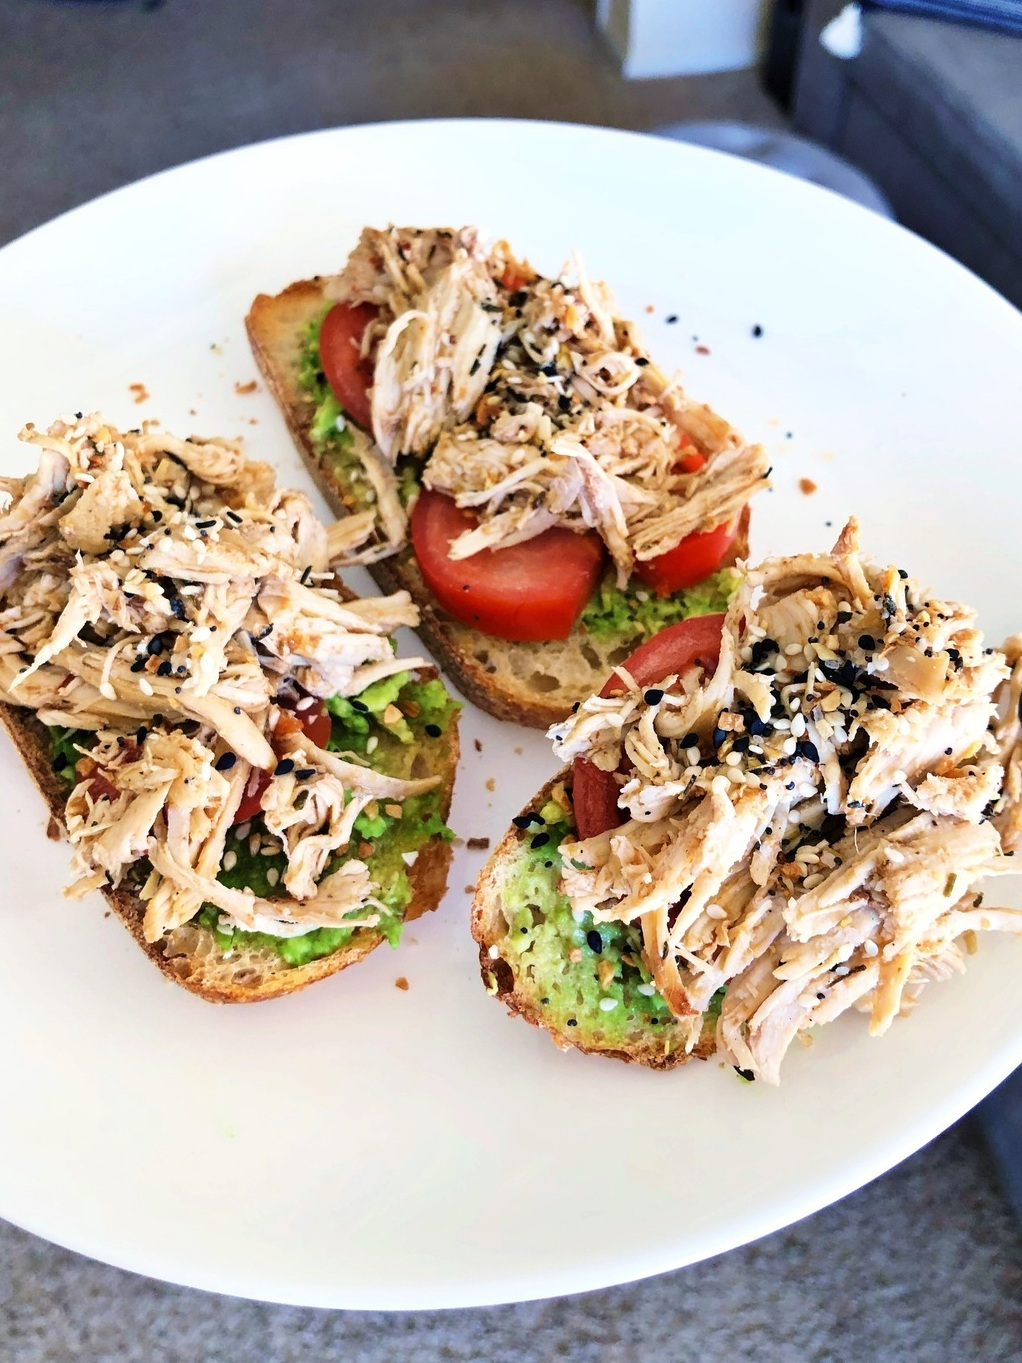 """Weekly meal prep idea. Instant Pot Salsa Shredded Chicken. This recipe is so easy, quick and tastes amazing. Sliced organic sourdough bread topped with mashed avocado, sliced tomatoes, salsa shredded chicken, and """"everything bagel� seasoning. So freaking good!!"""